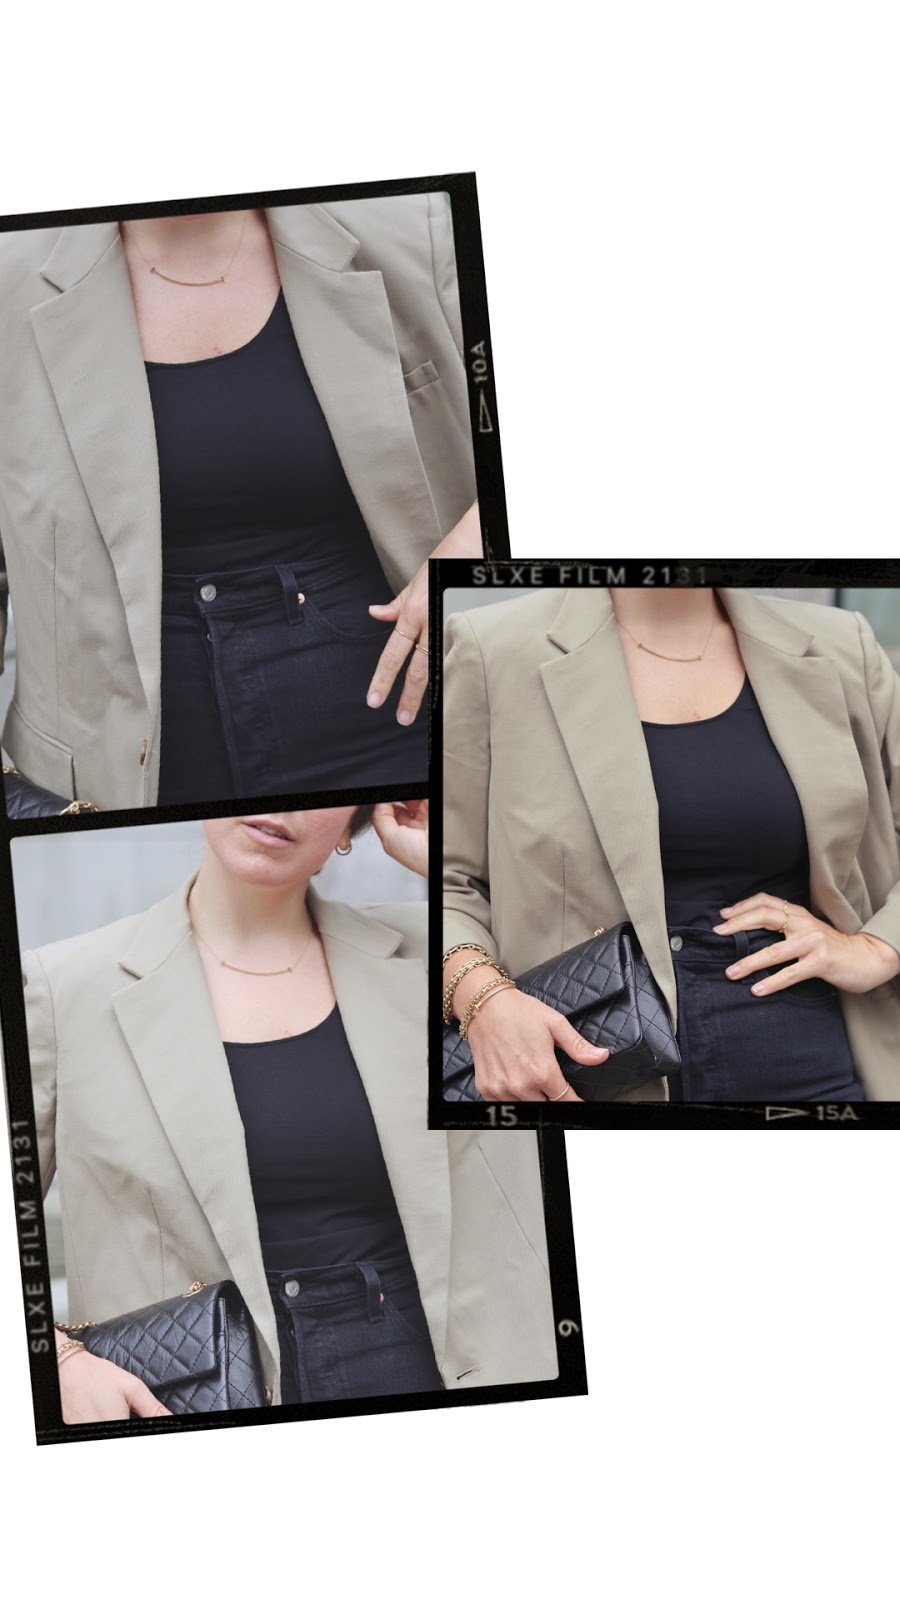 aritzia agency blazer outfit oversized blazer levis ribcage jeans le chateau heels